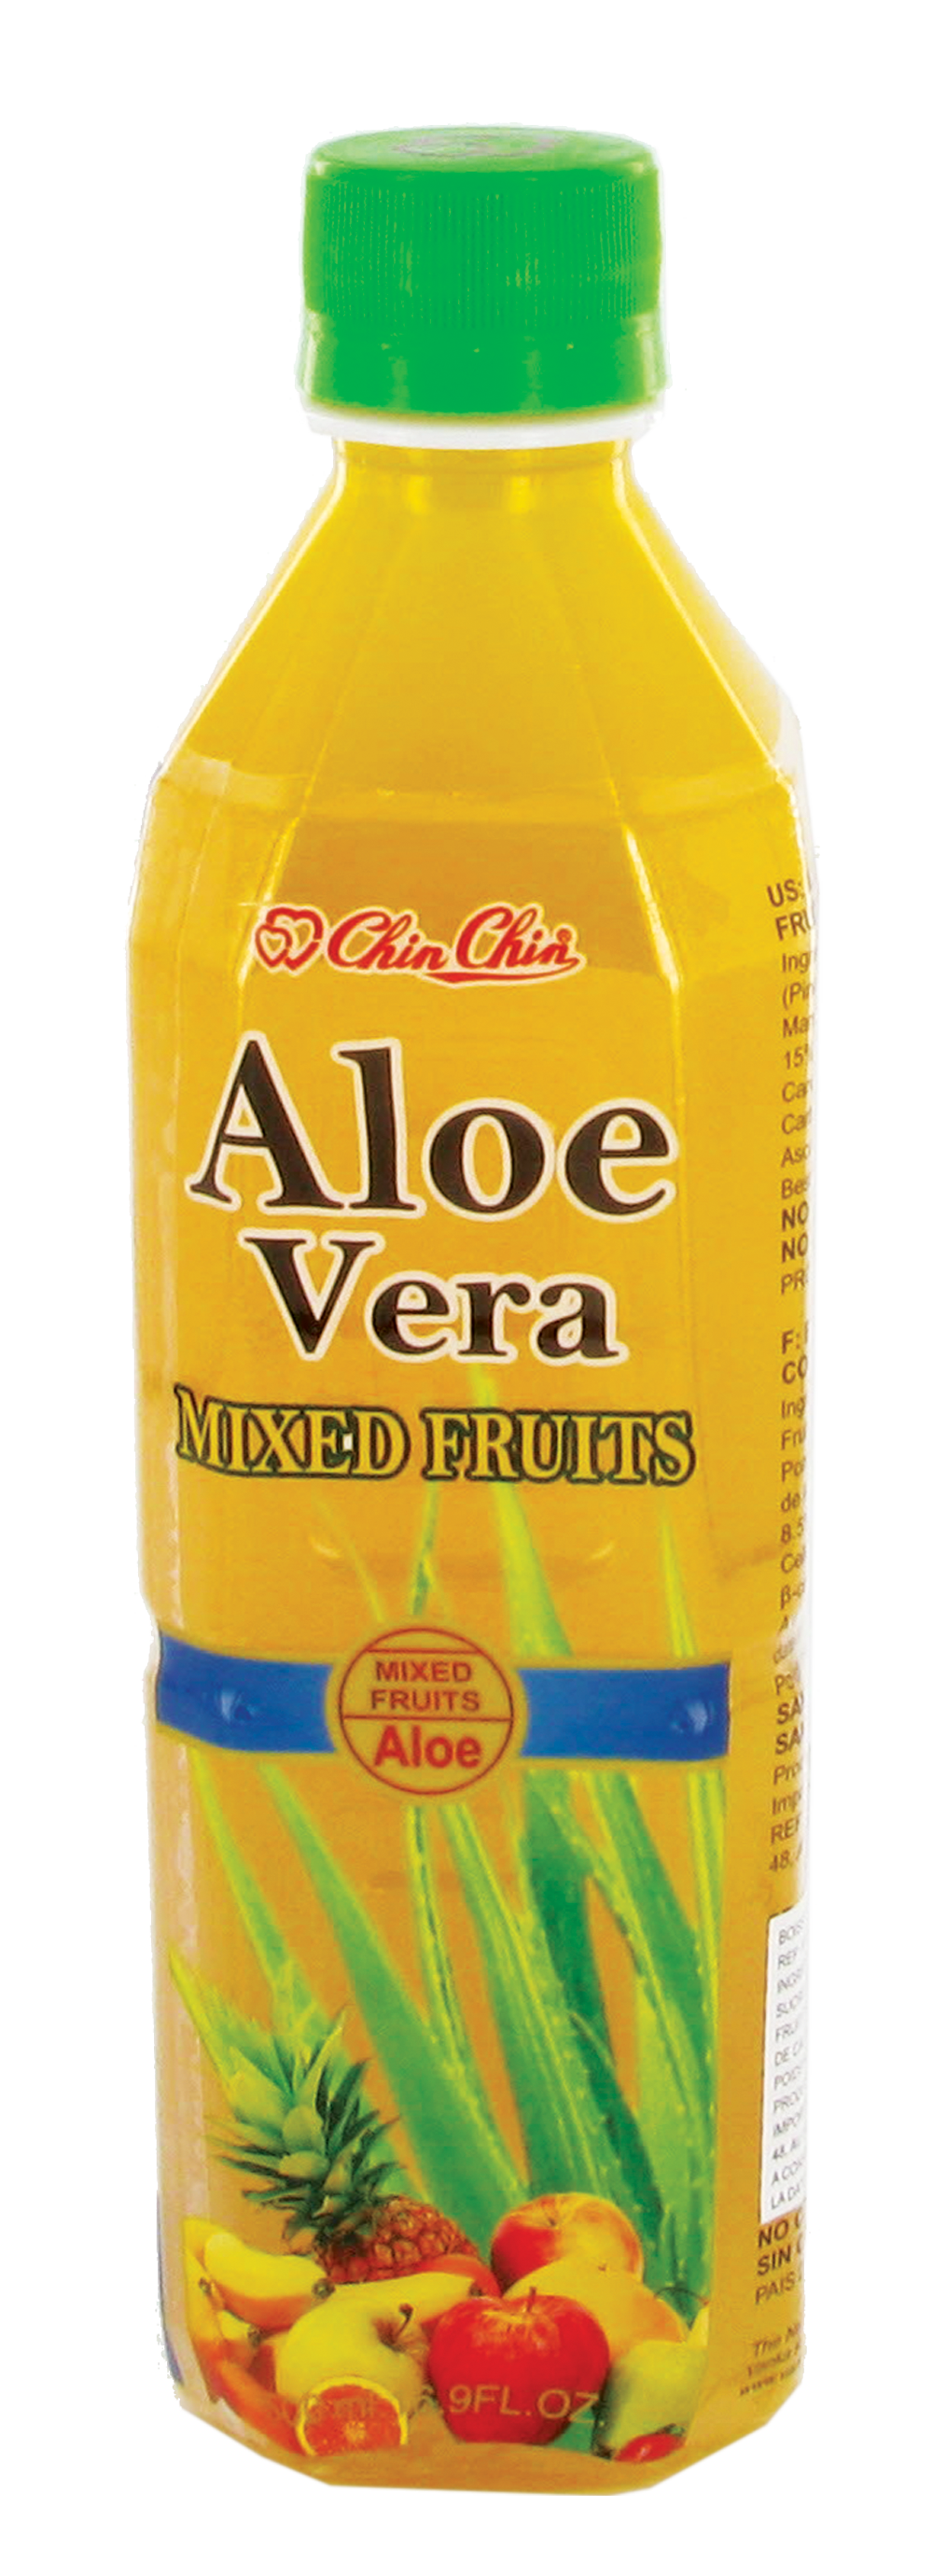 Boisson au jus d'aloe vera & multifruits, Chin Chin (50 cl)